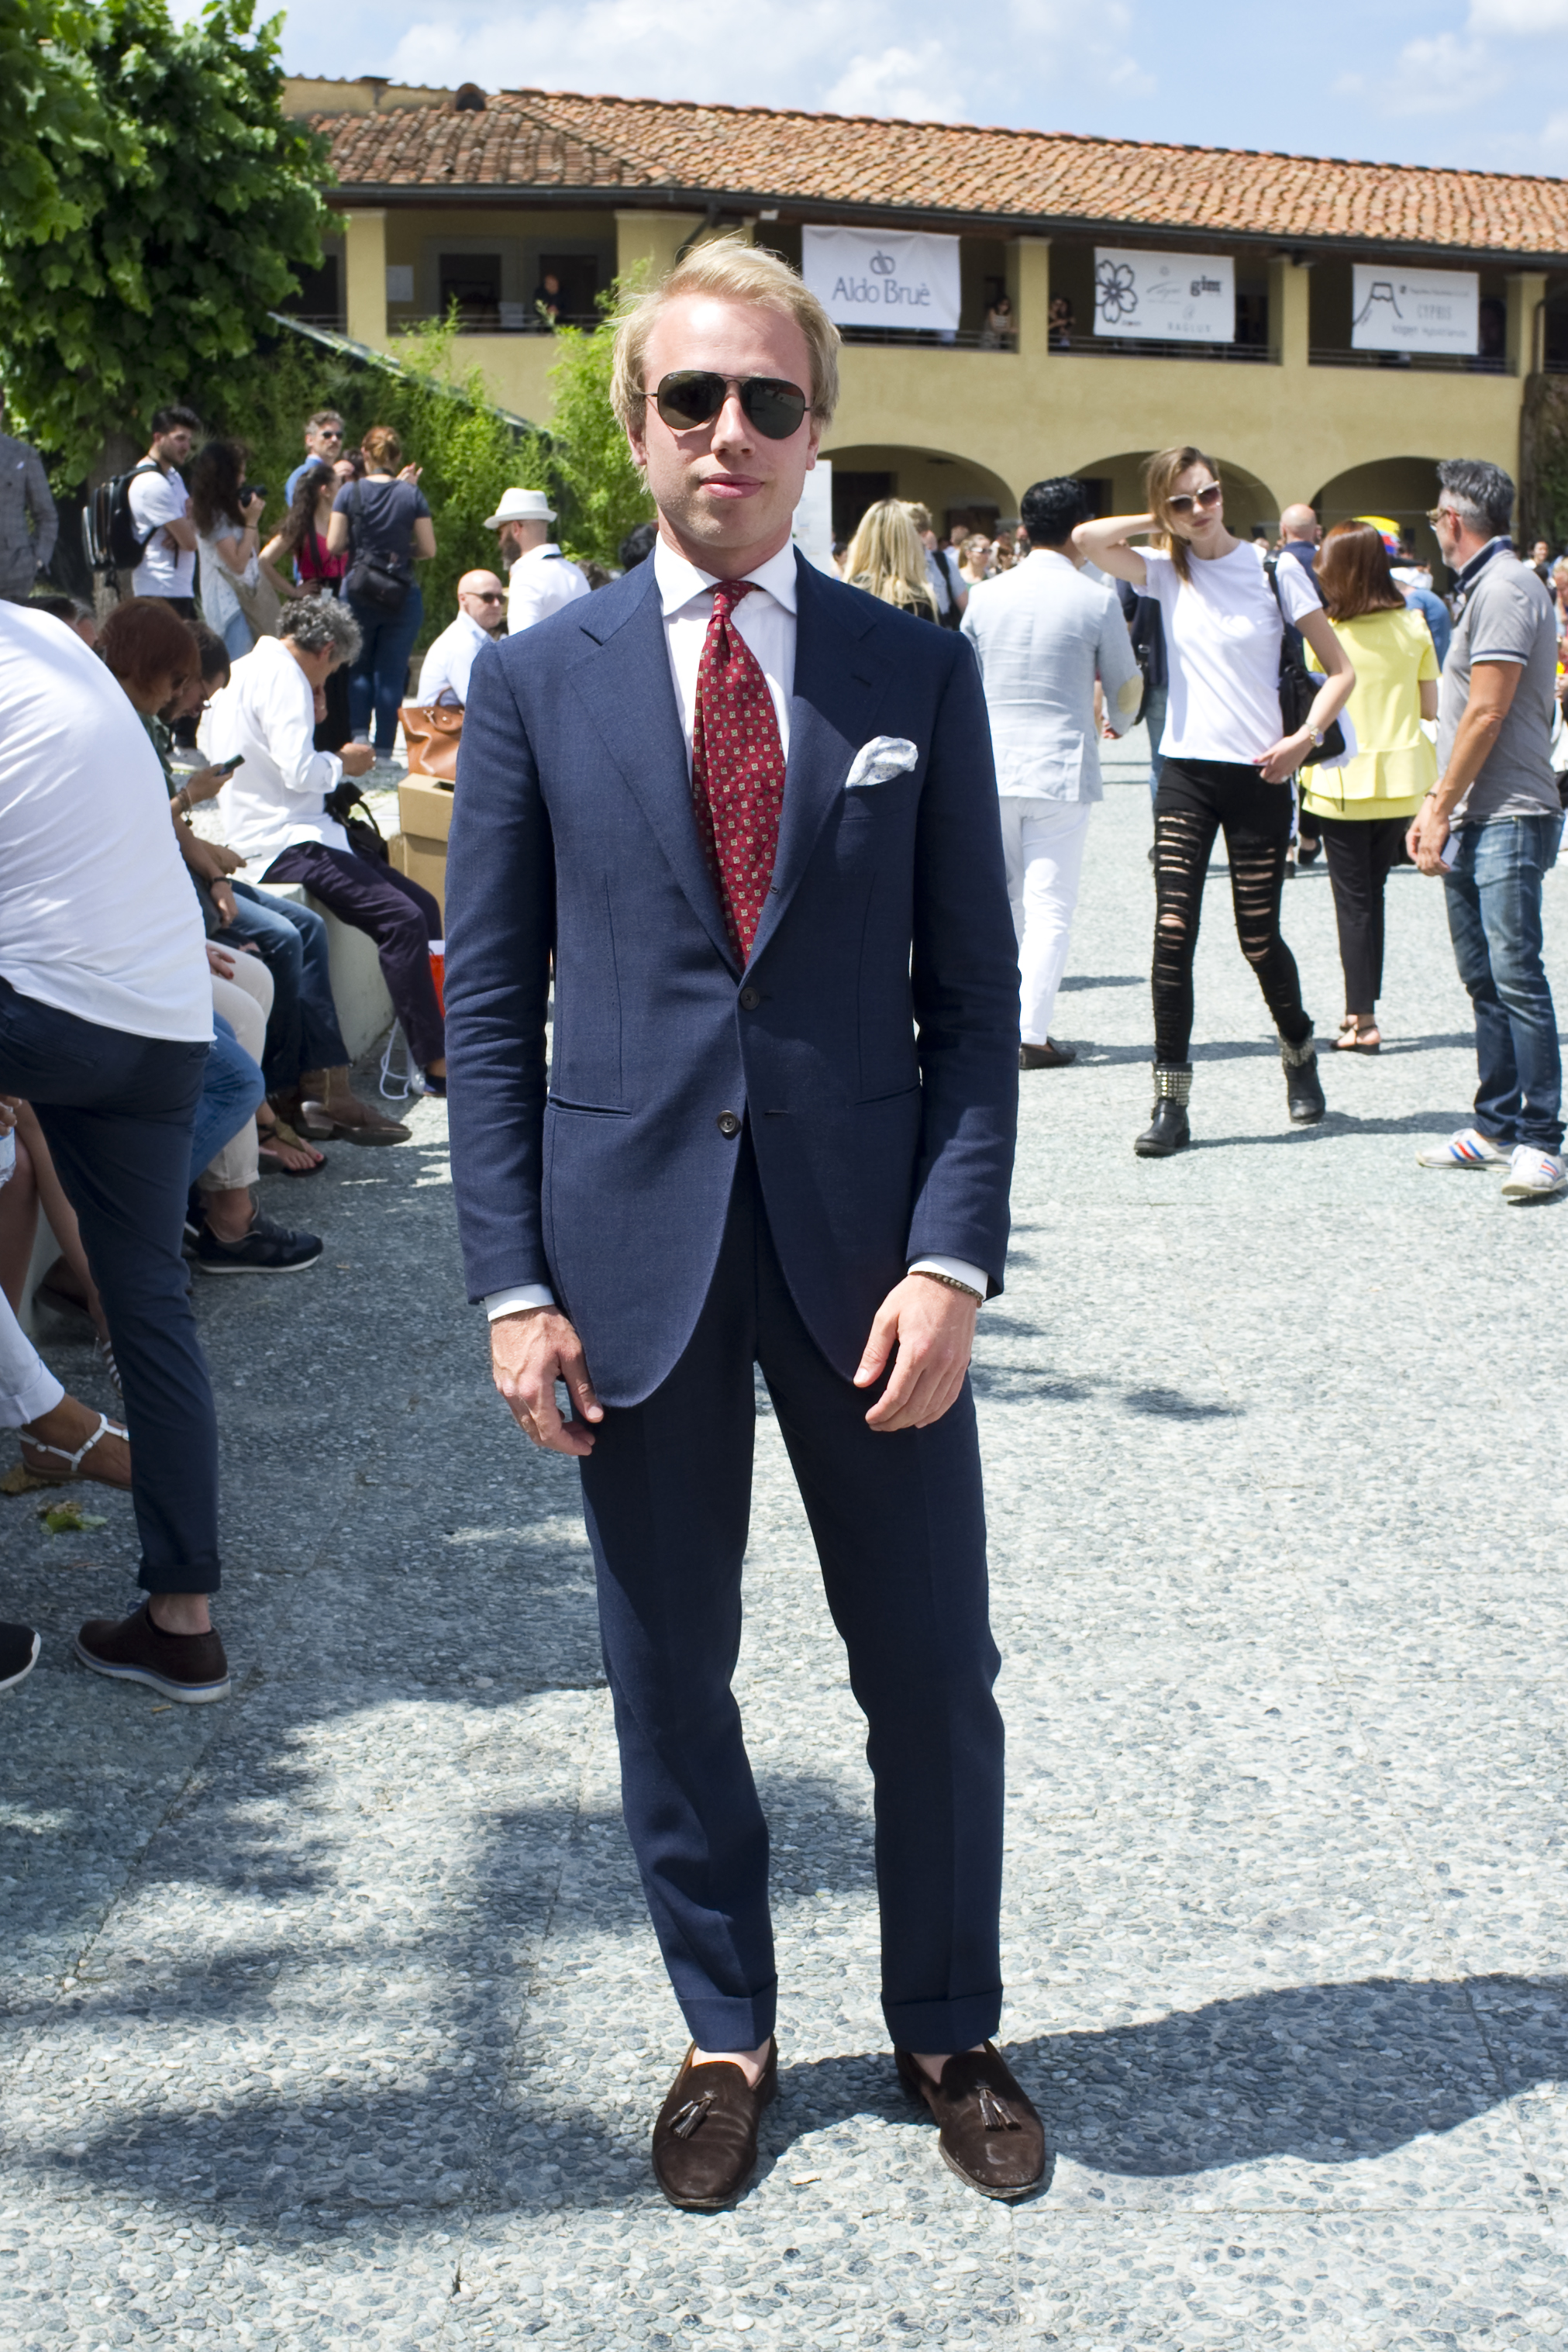 Streetstyle: The Best Pictures From Pitti Uomo 88